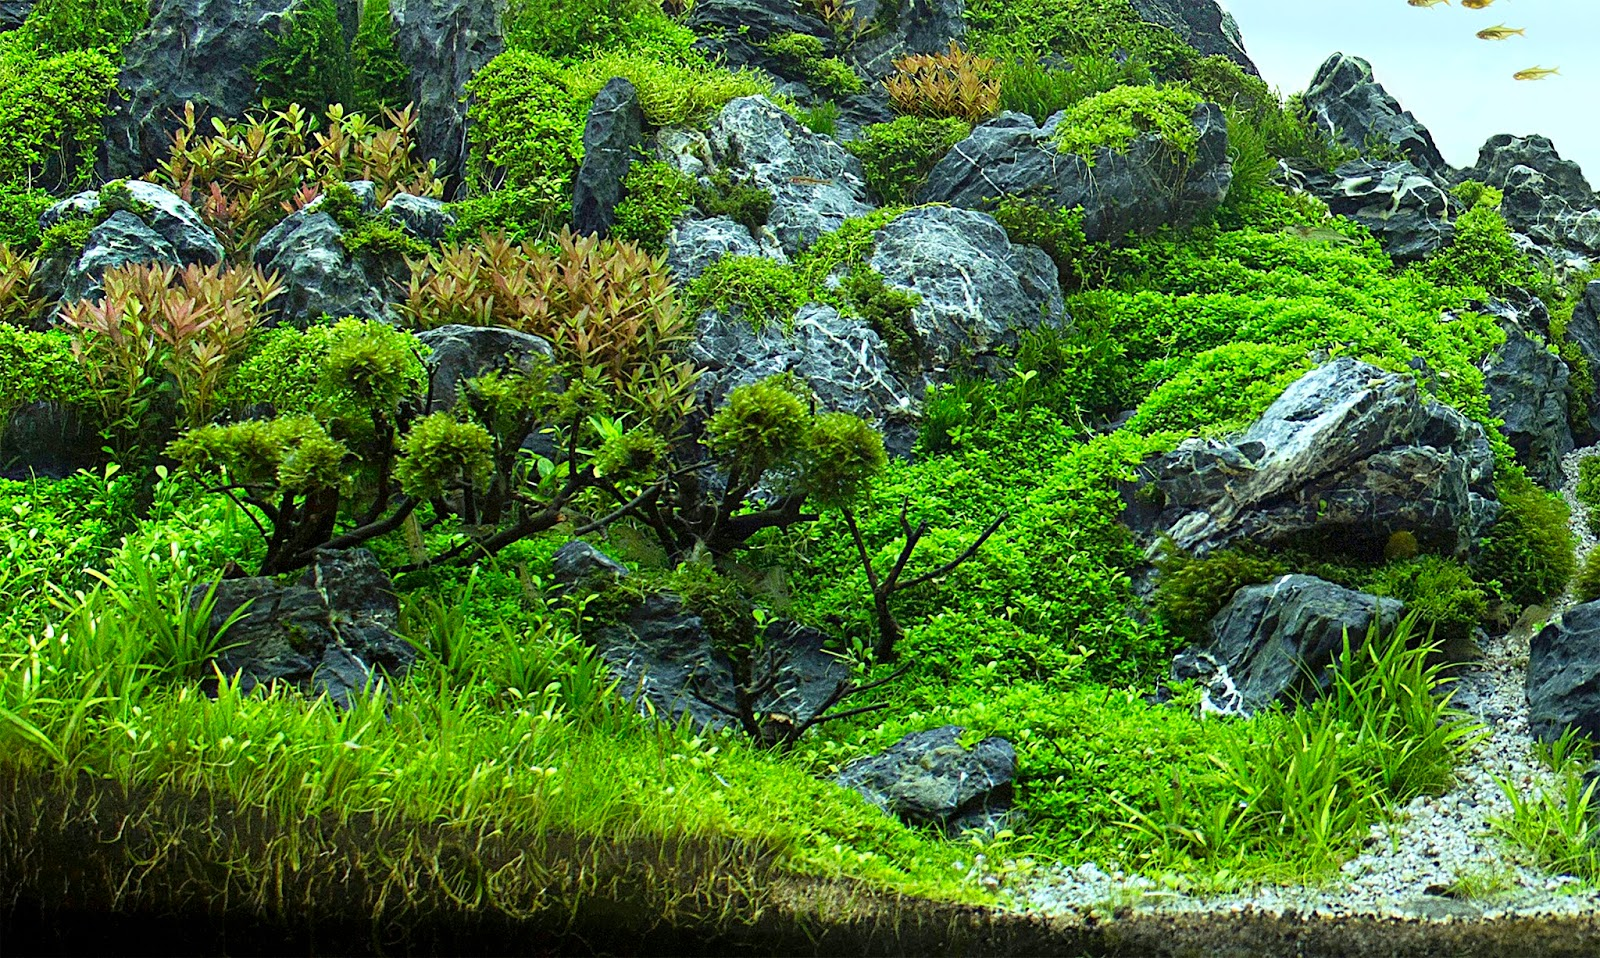 Aquascaping spain a morning of peace and calm by juan puchades - Aquascape espana ...